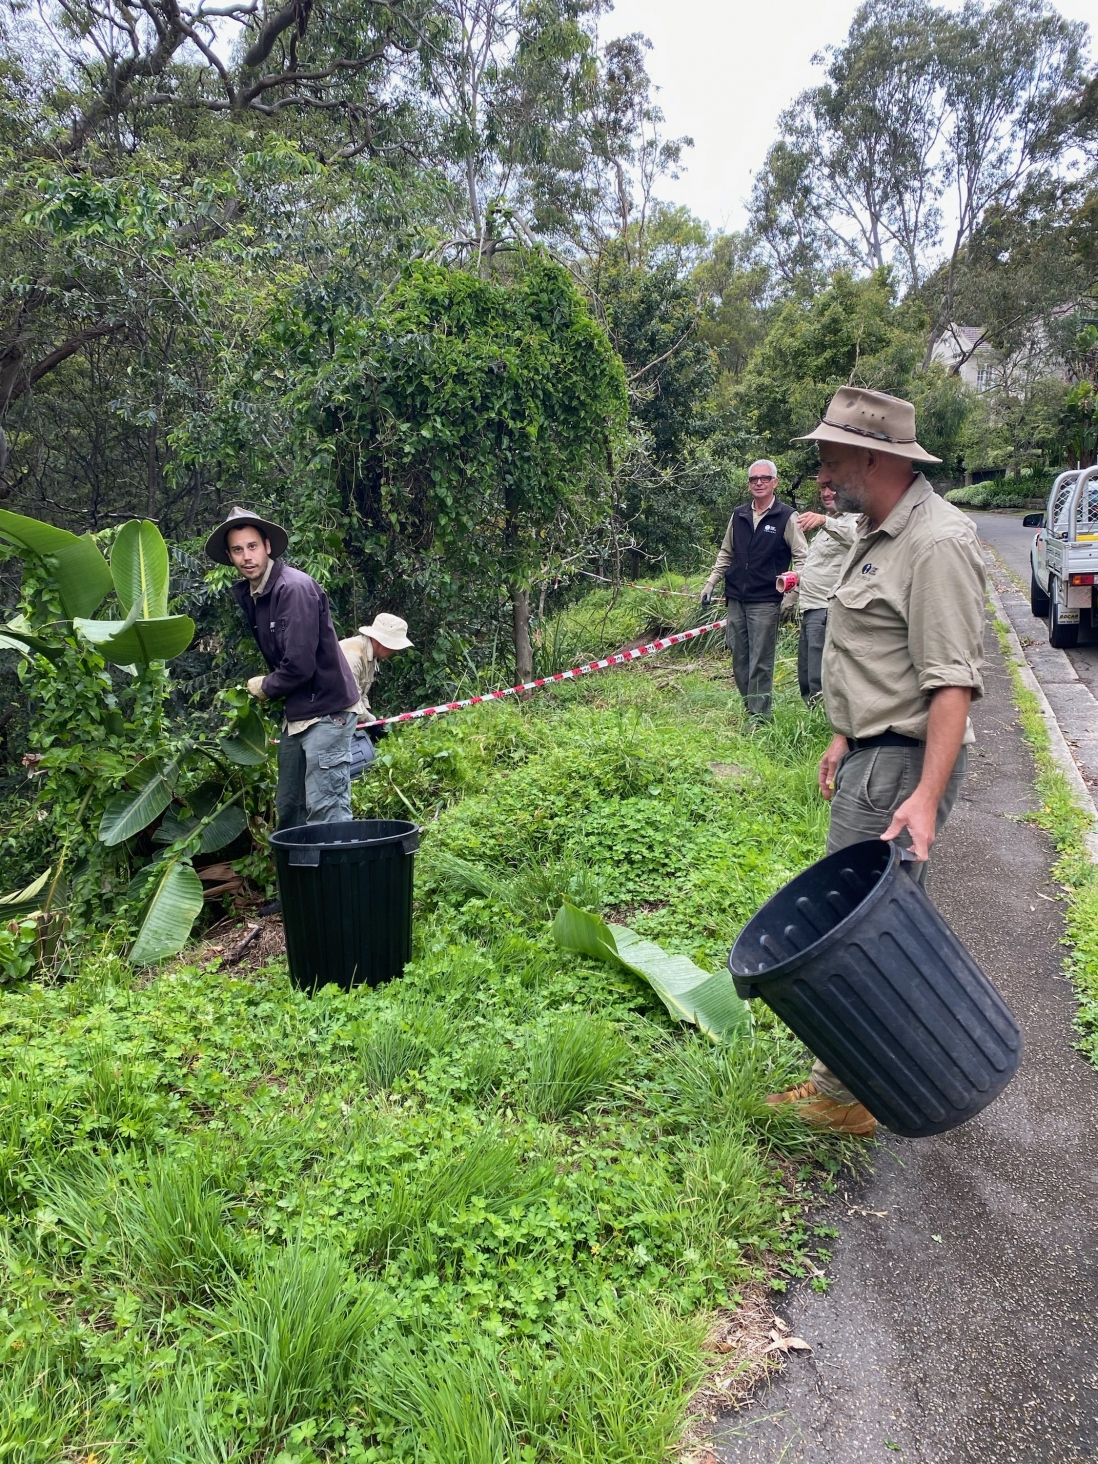 the Gardens Team of Sydney Living Museums work on the bush curtilage of Vaucluse house, they are filling bins with weed species.